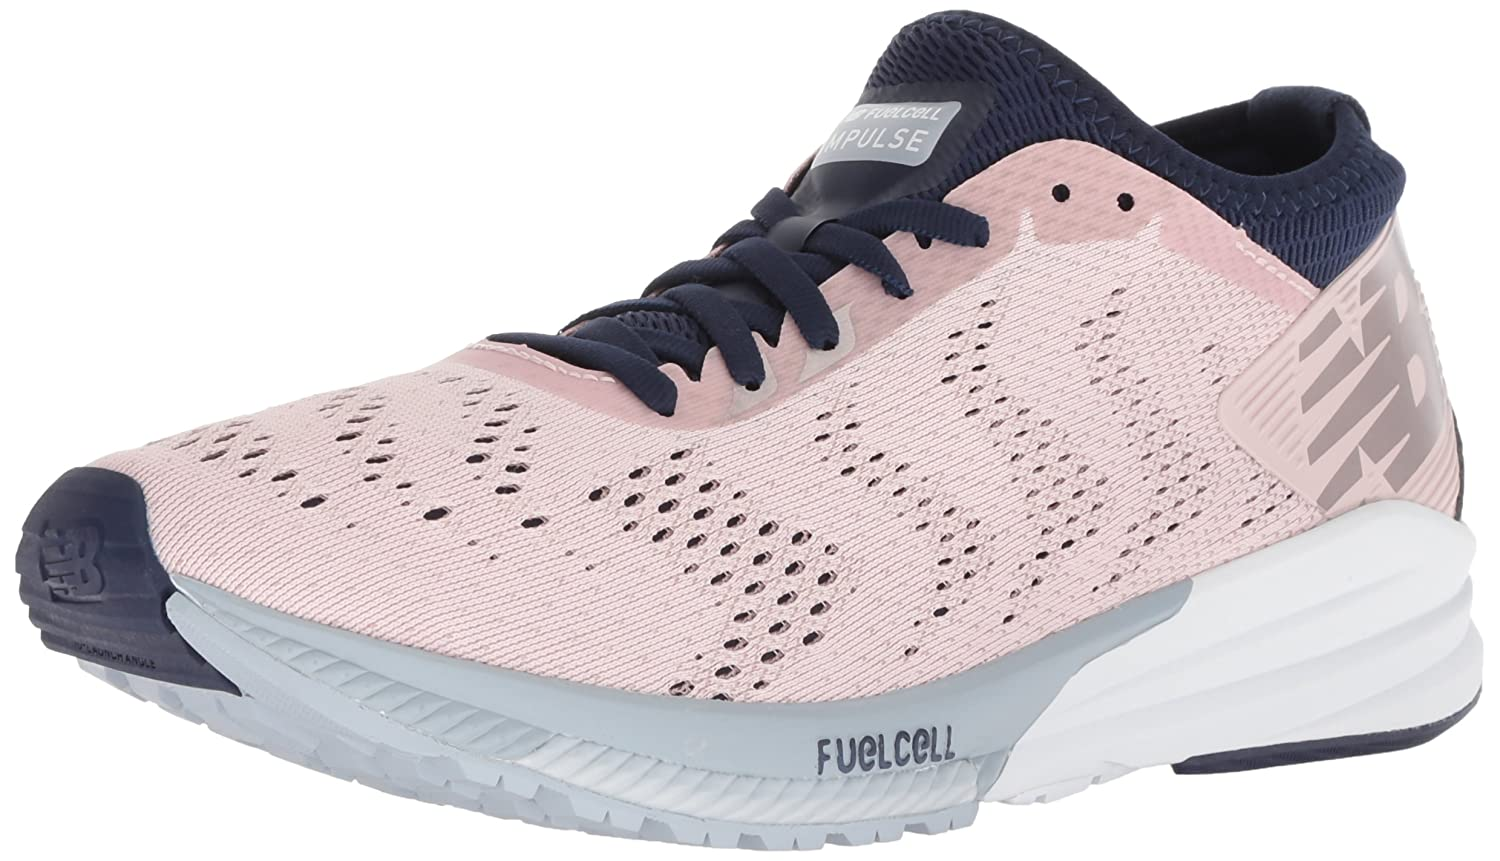 New Balance Women's Impulse V1 FuelCell Running Shoe B075R7PSHZ 10.5 B(M) US|Light Pink